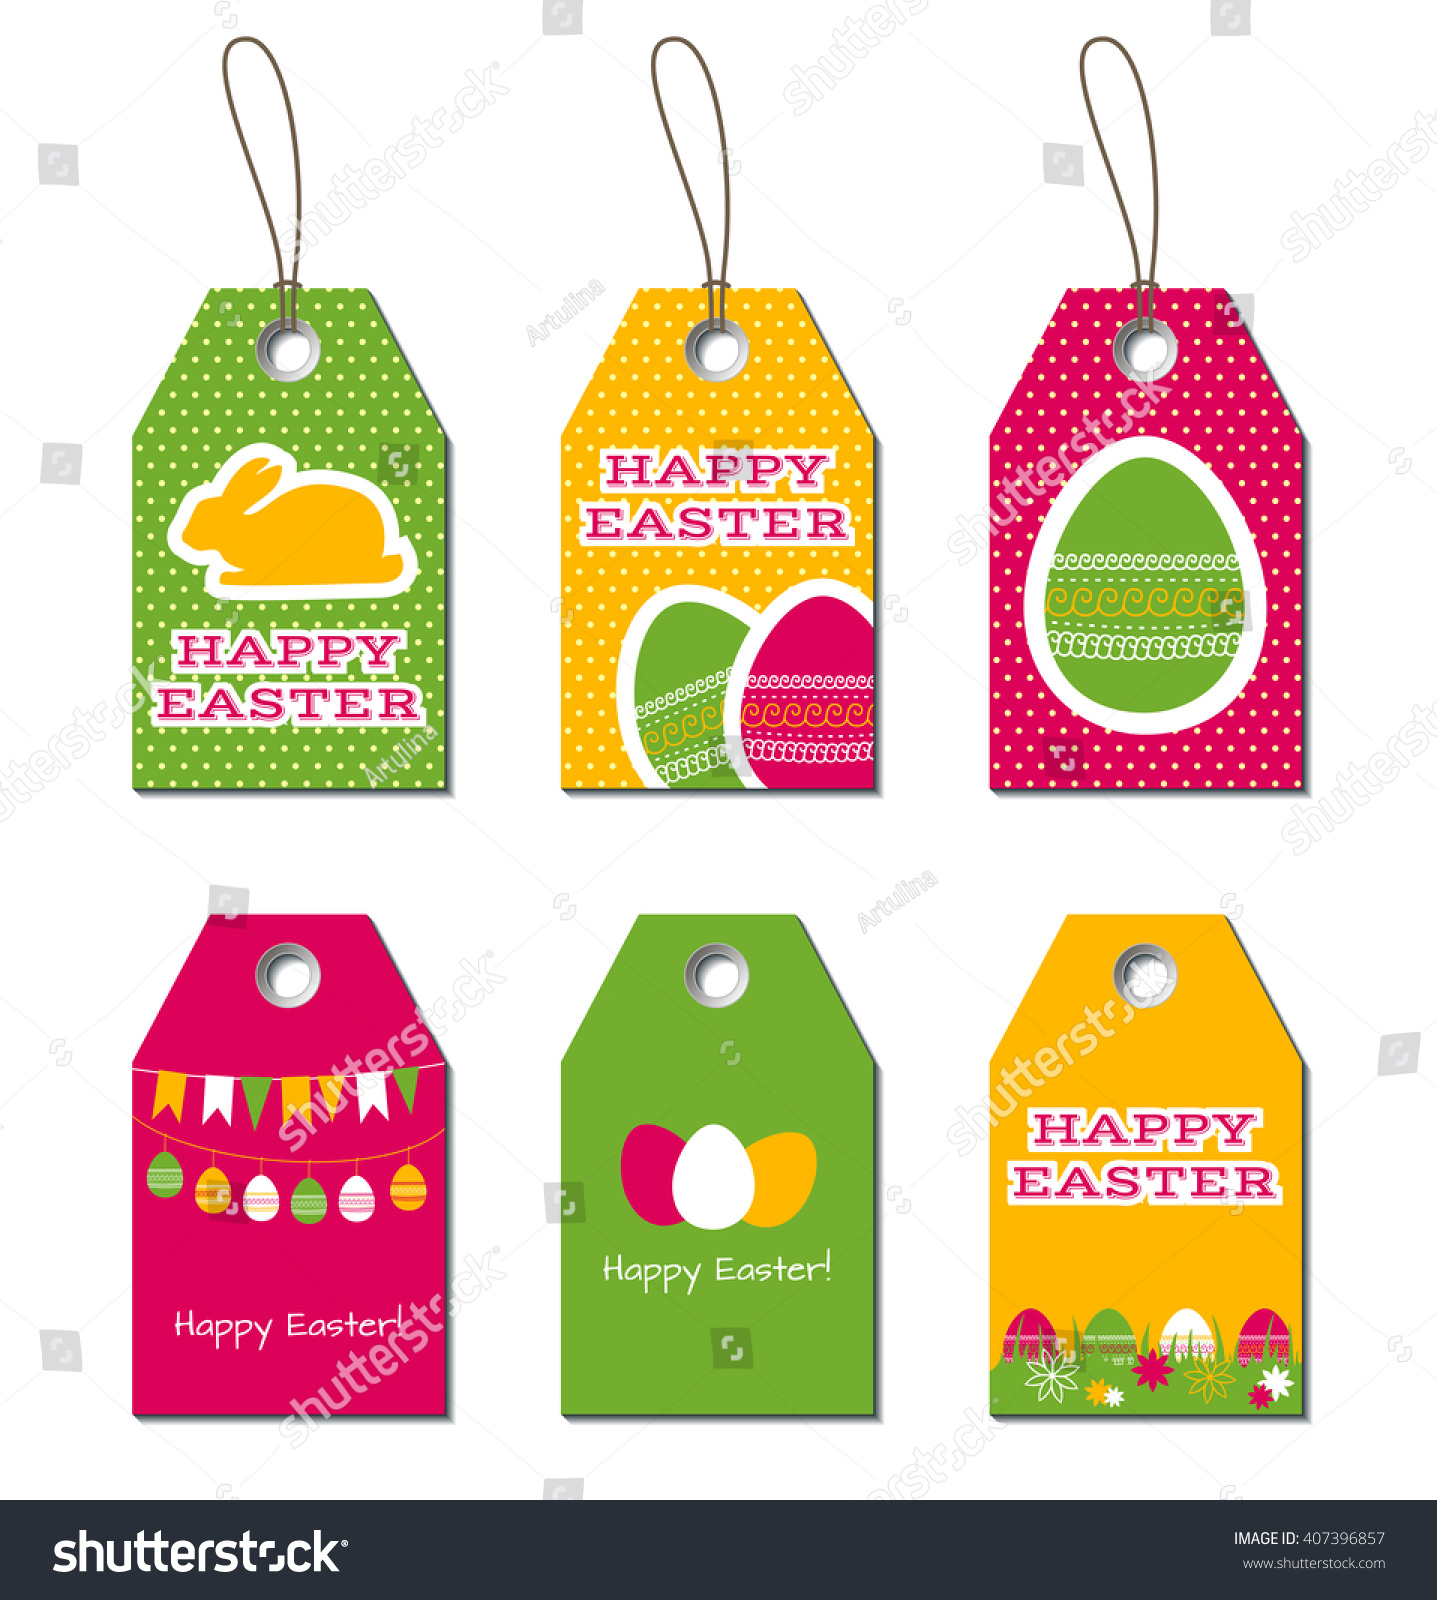 Easter tags easter greetings small gift stock illustration easter tags easter greetings small gift cards for easter design with bunny and eggs negle Choice Image